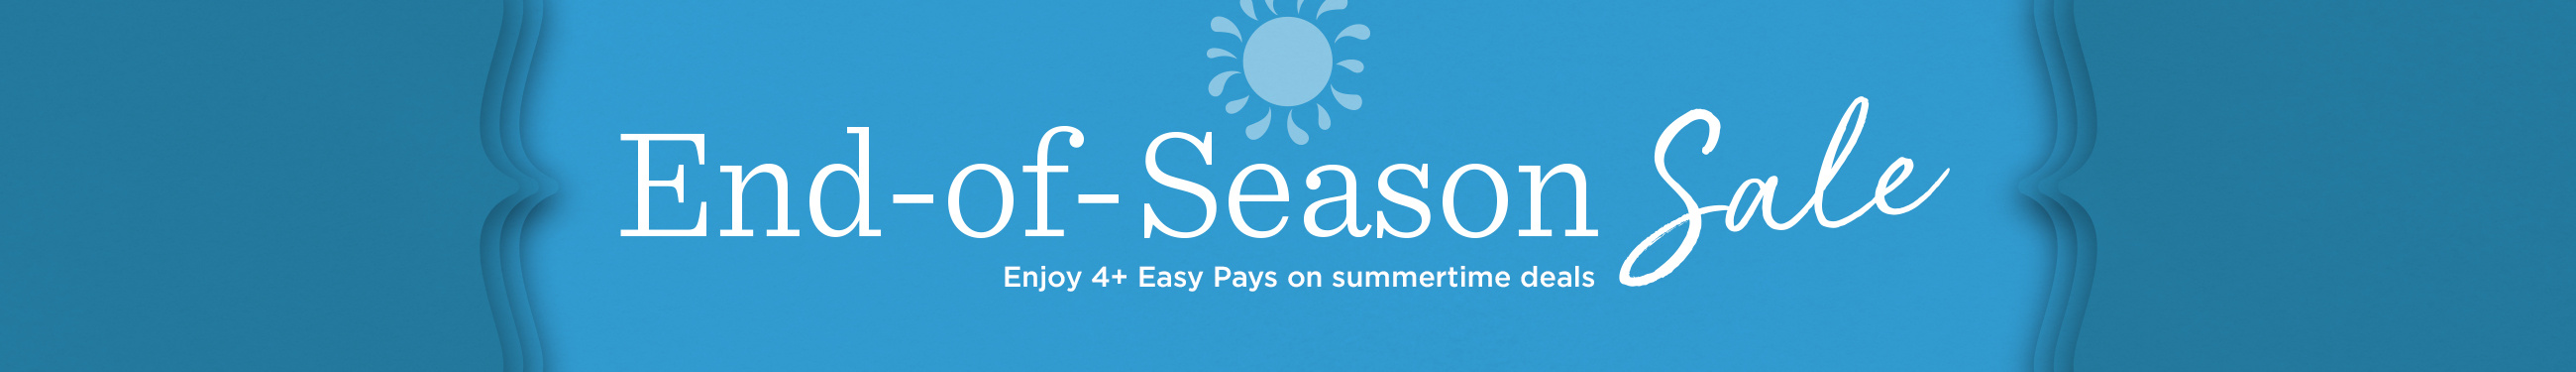 End-of-Season Sale Enjoy 4+ Easy Pays on summertime deals